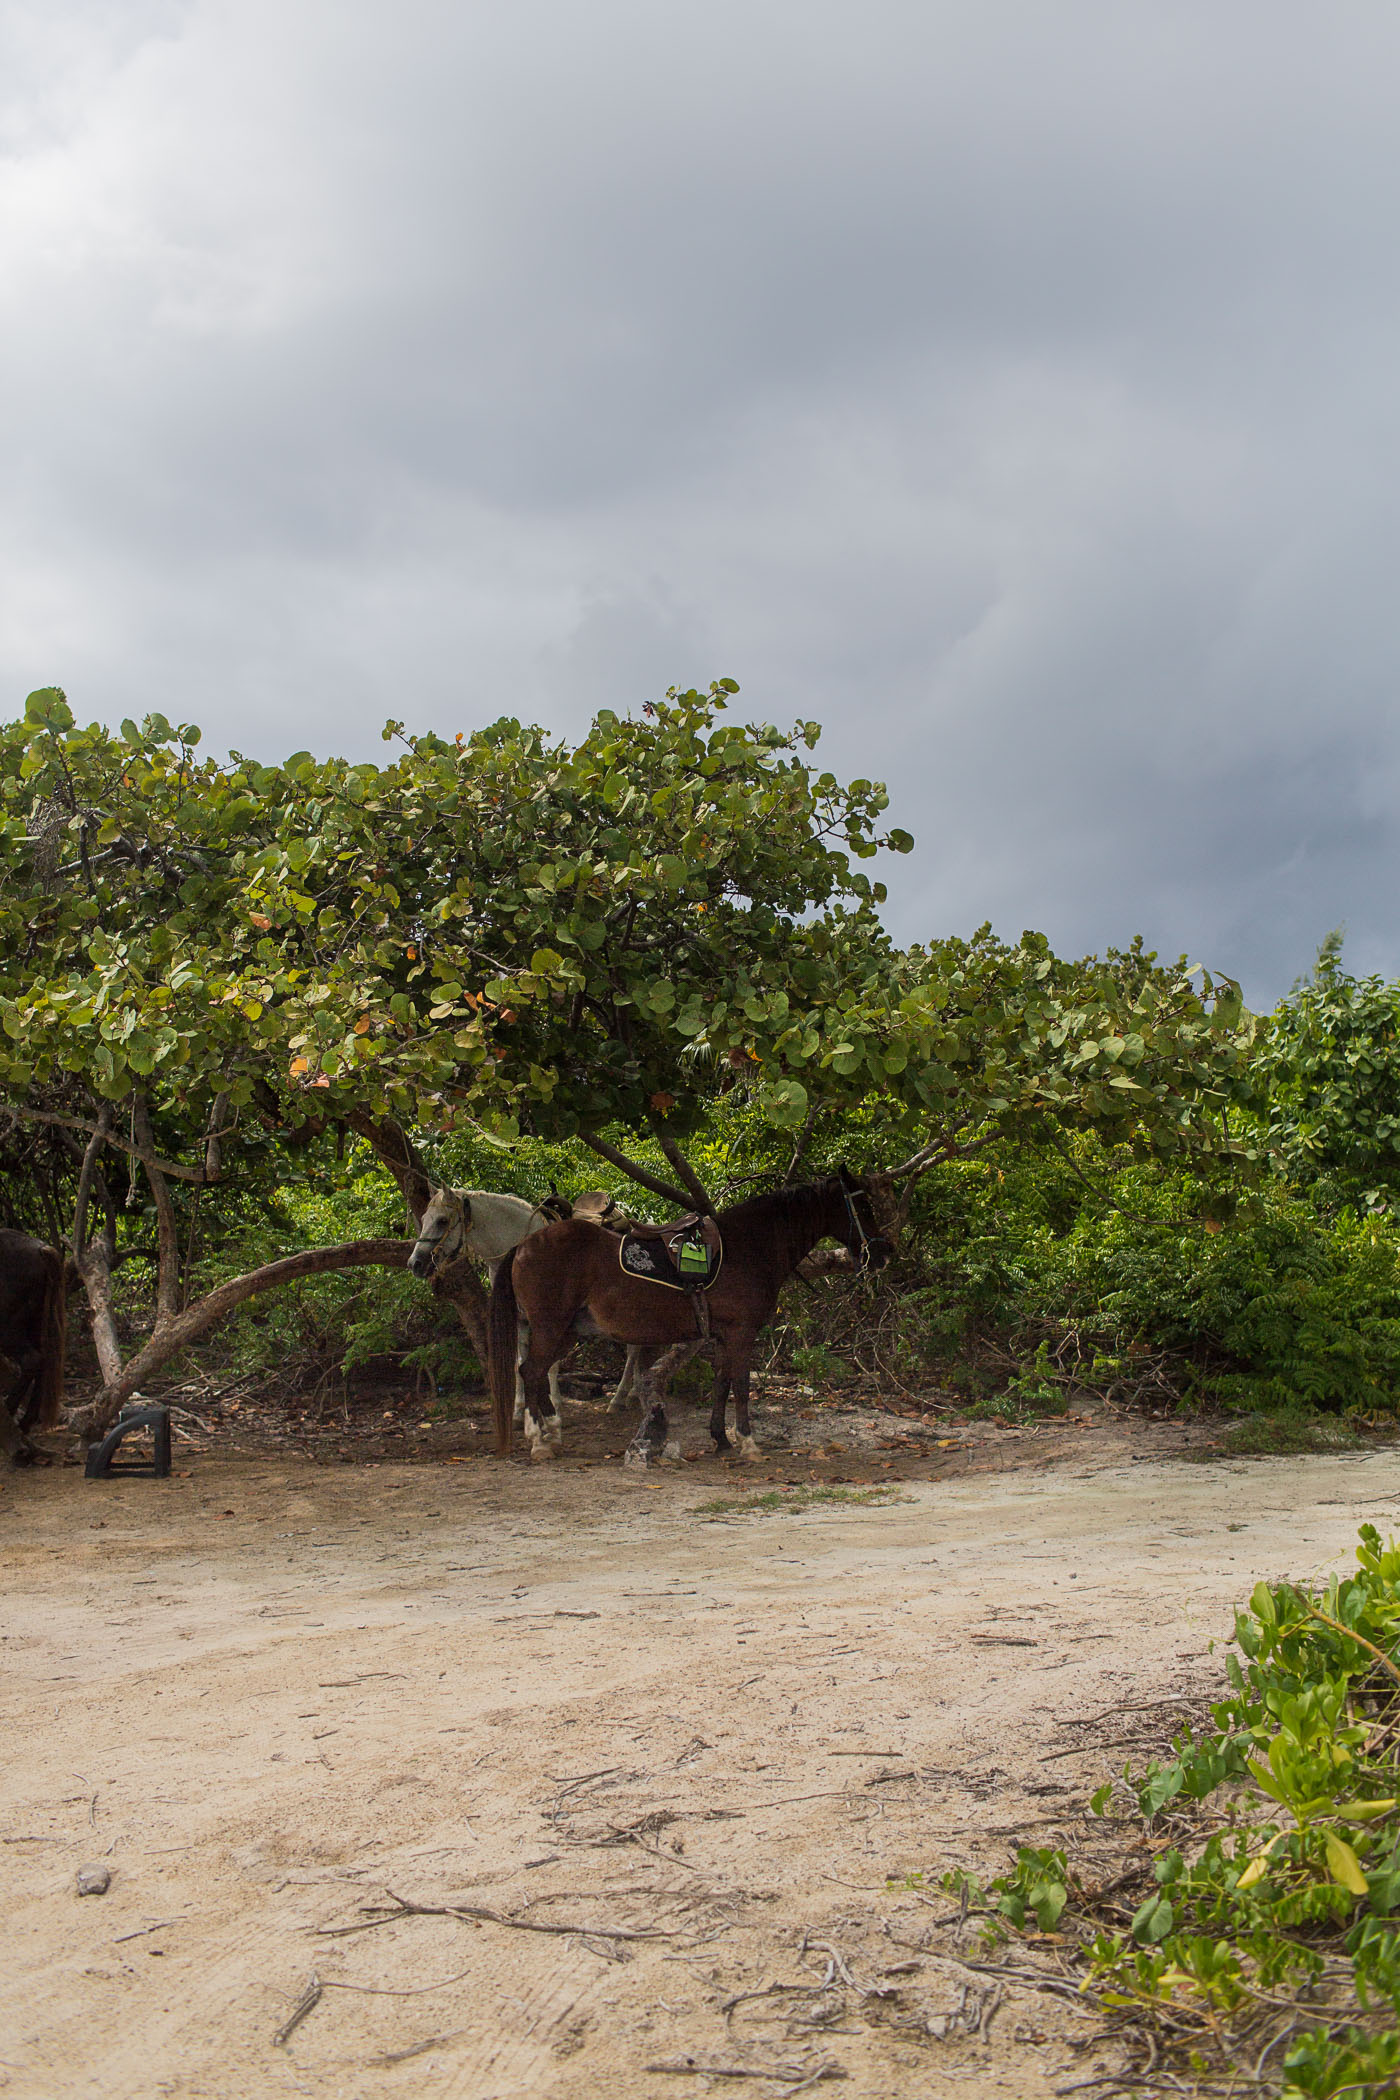 Horseback Riding on the beach in Grand Cayman